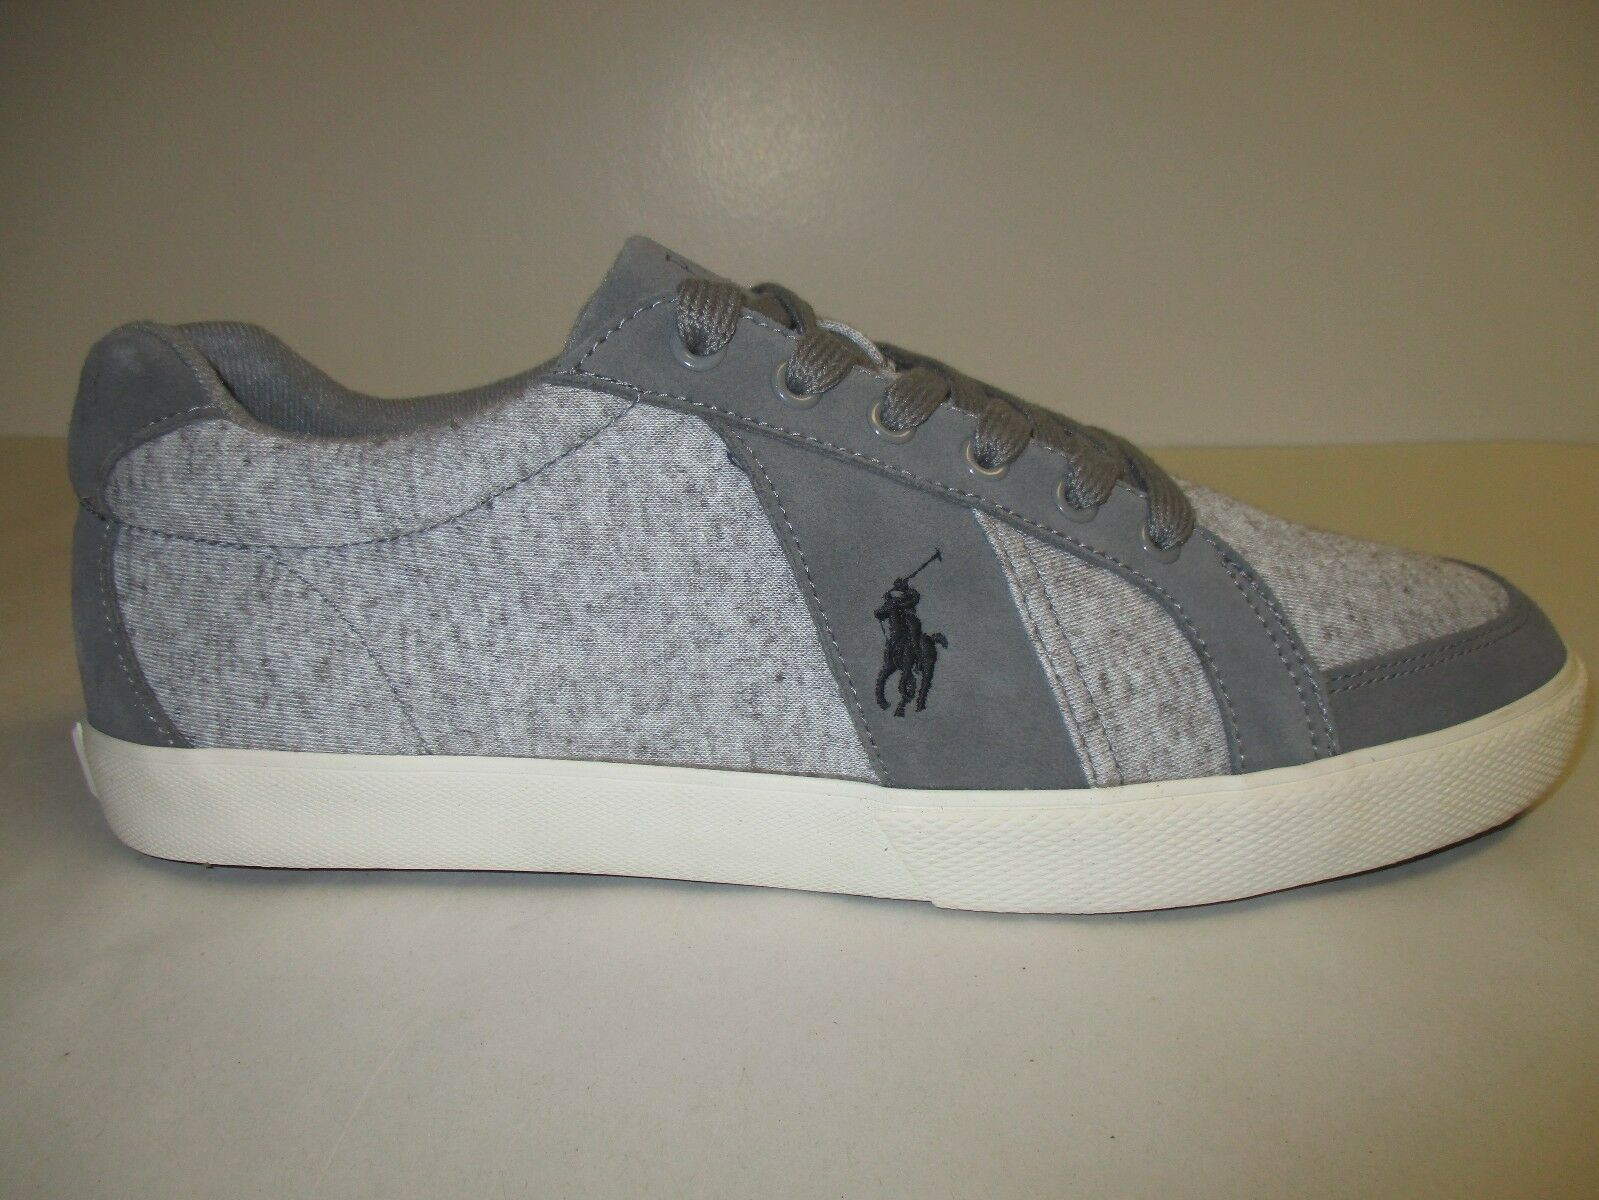 Polo Ralph Lauren Sze 7.5 M HUGH Twisted Heather Fashion Sneakers New Mens Shoes